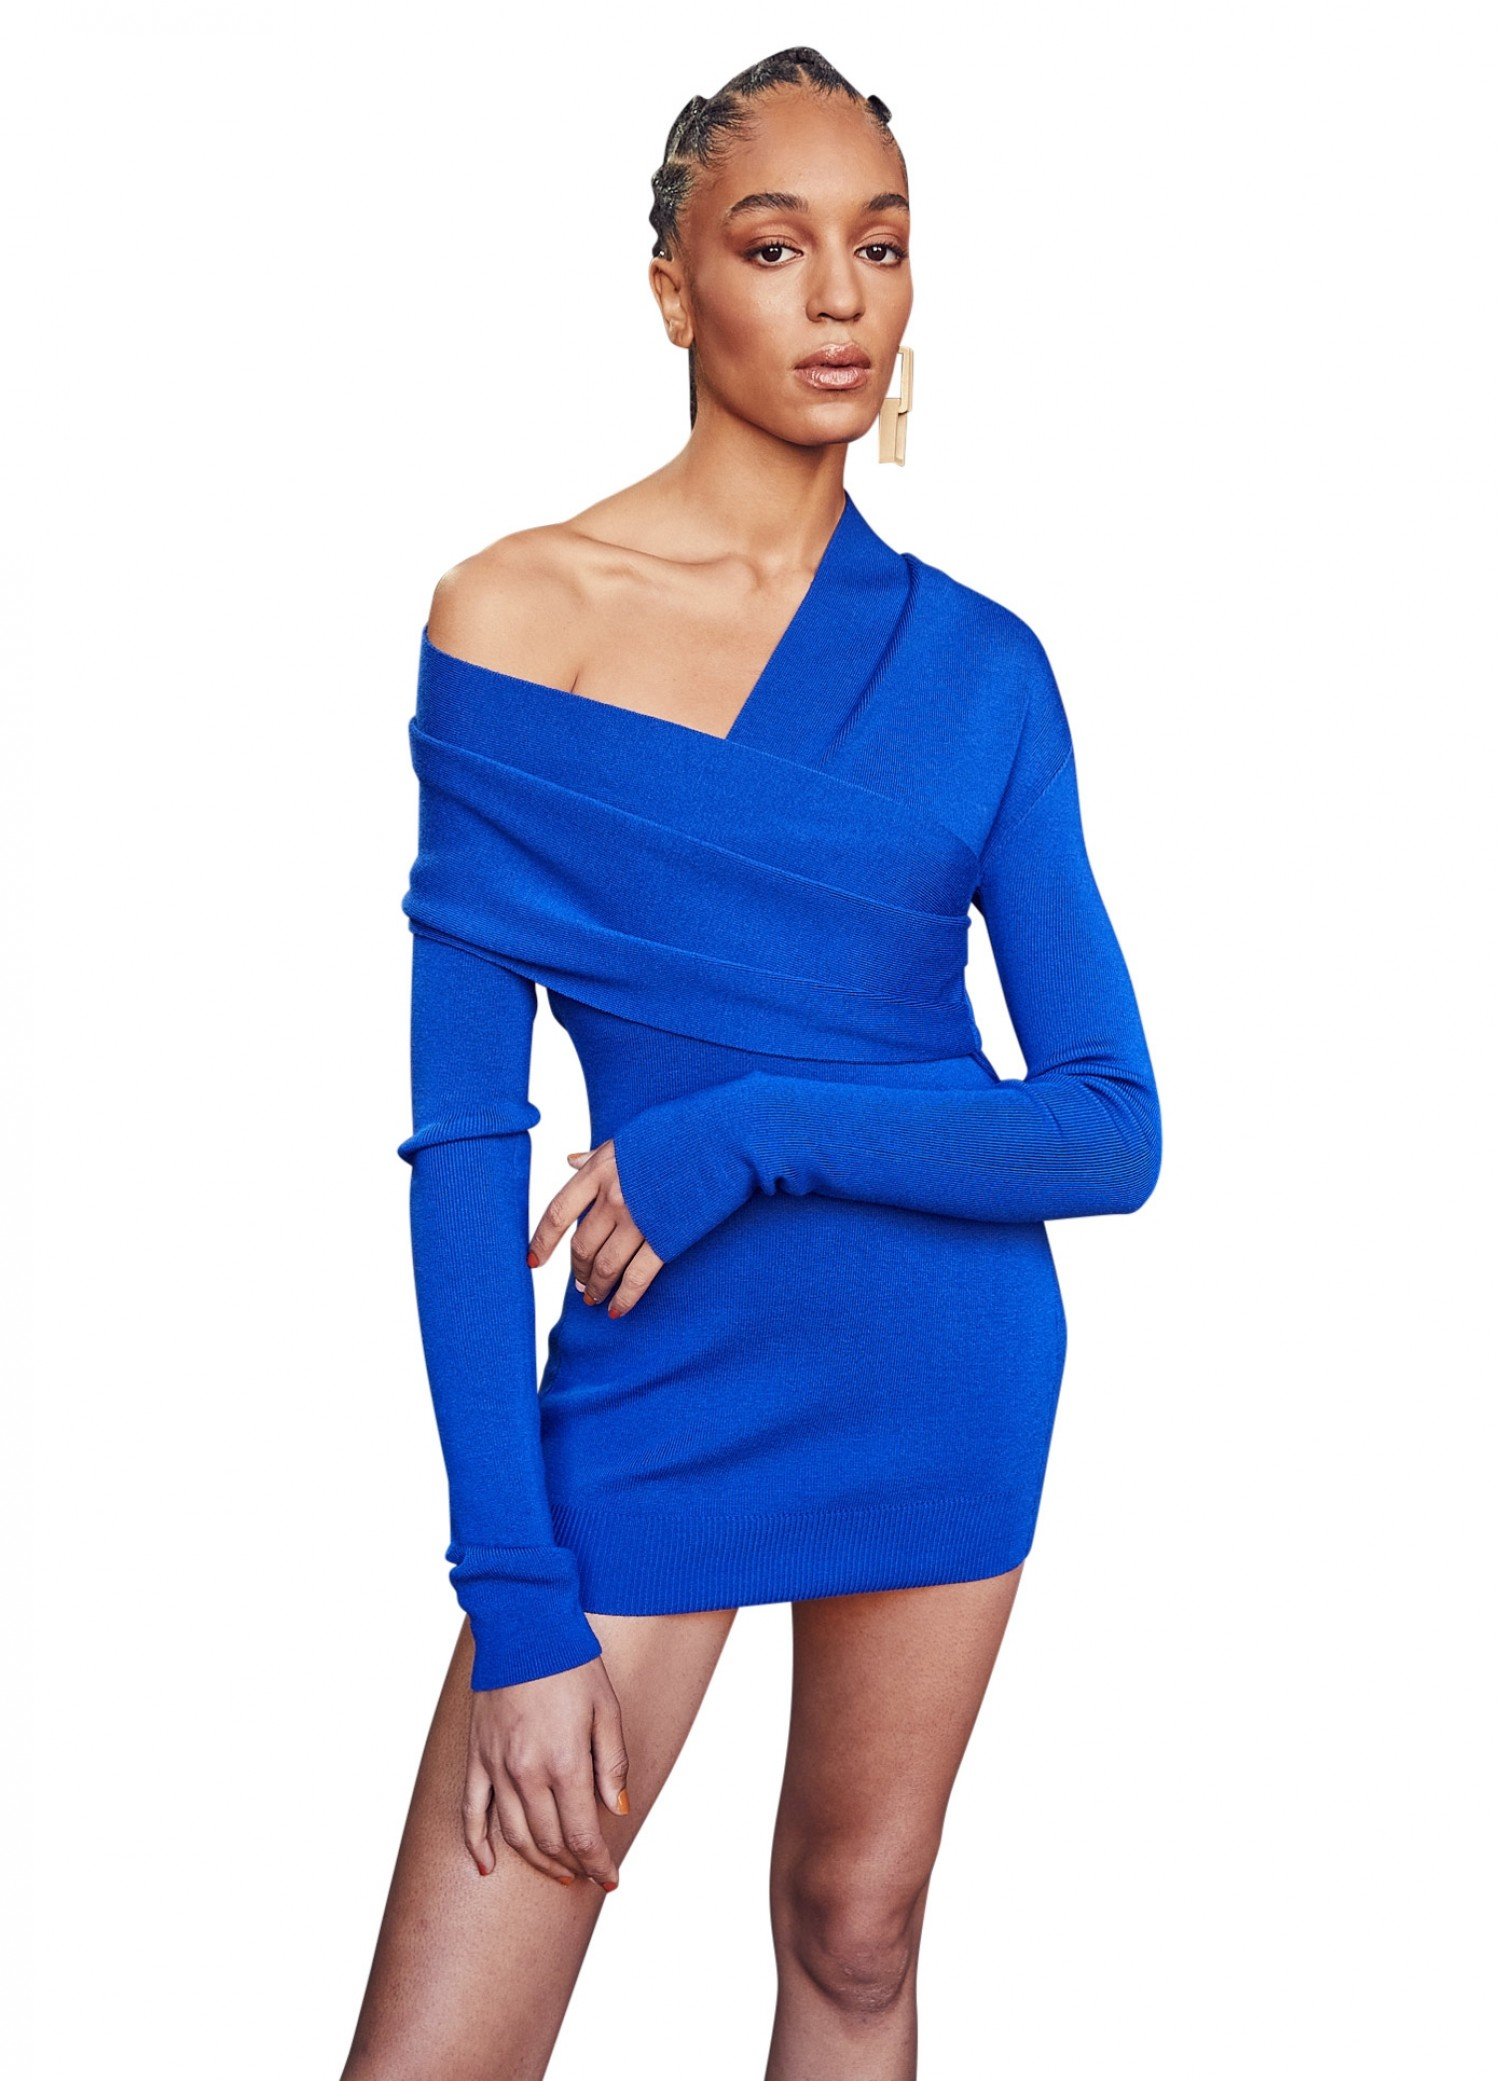 MONSE Twisted Wrap Collar Knit Mini Dress in Electric Blue on Model No Background Front